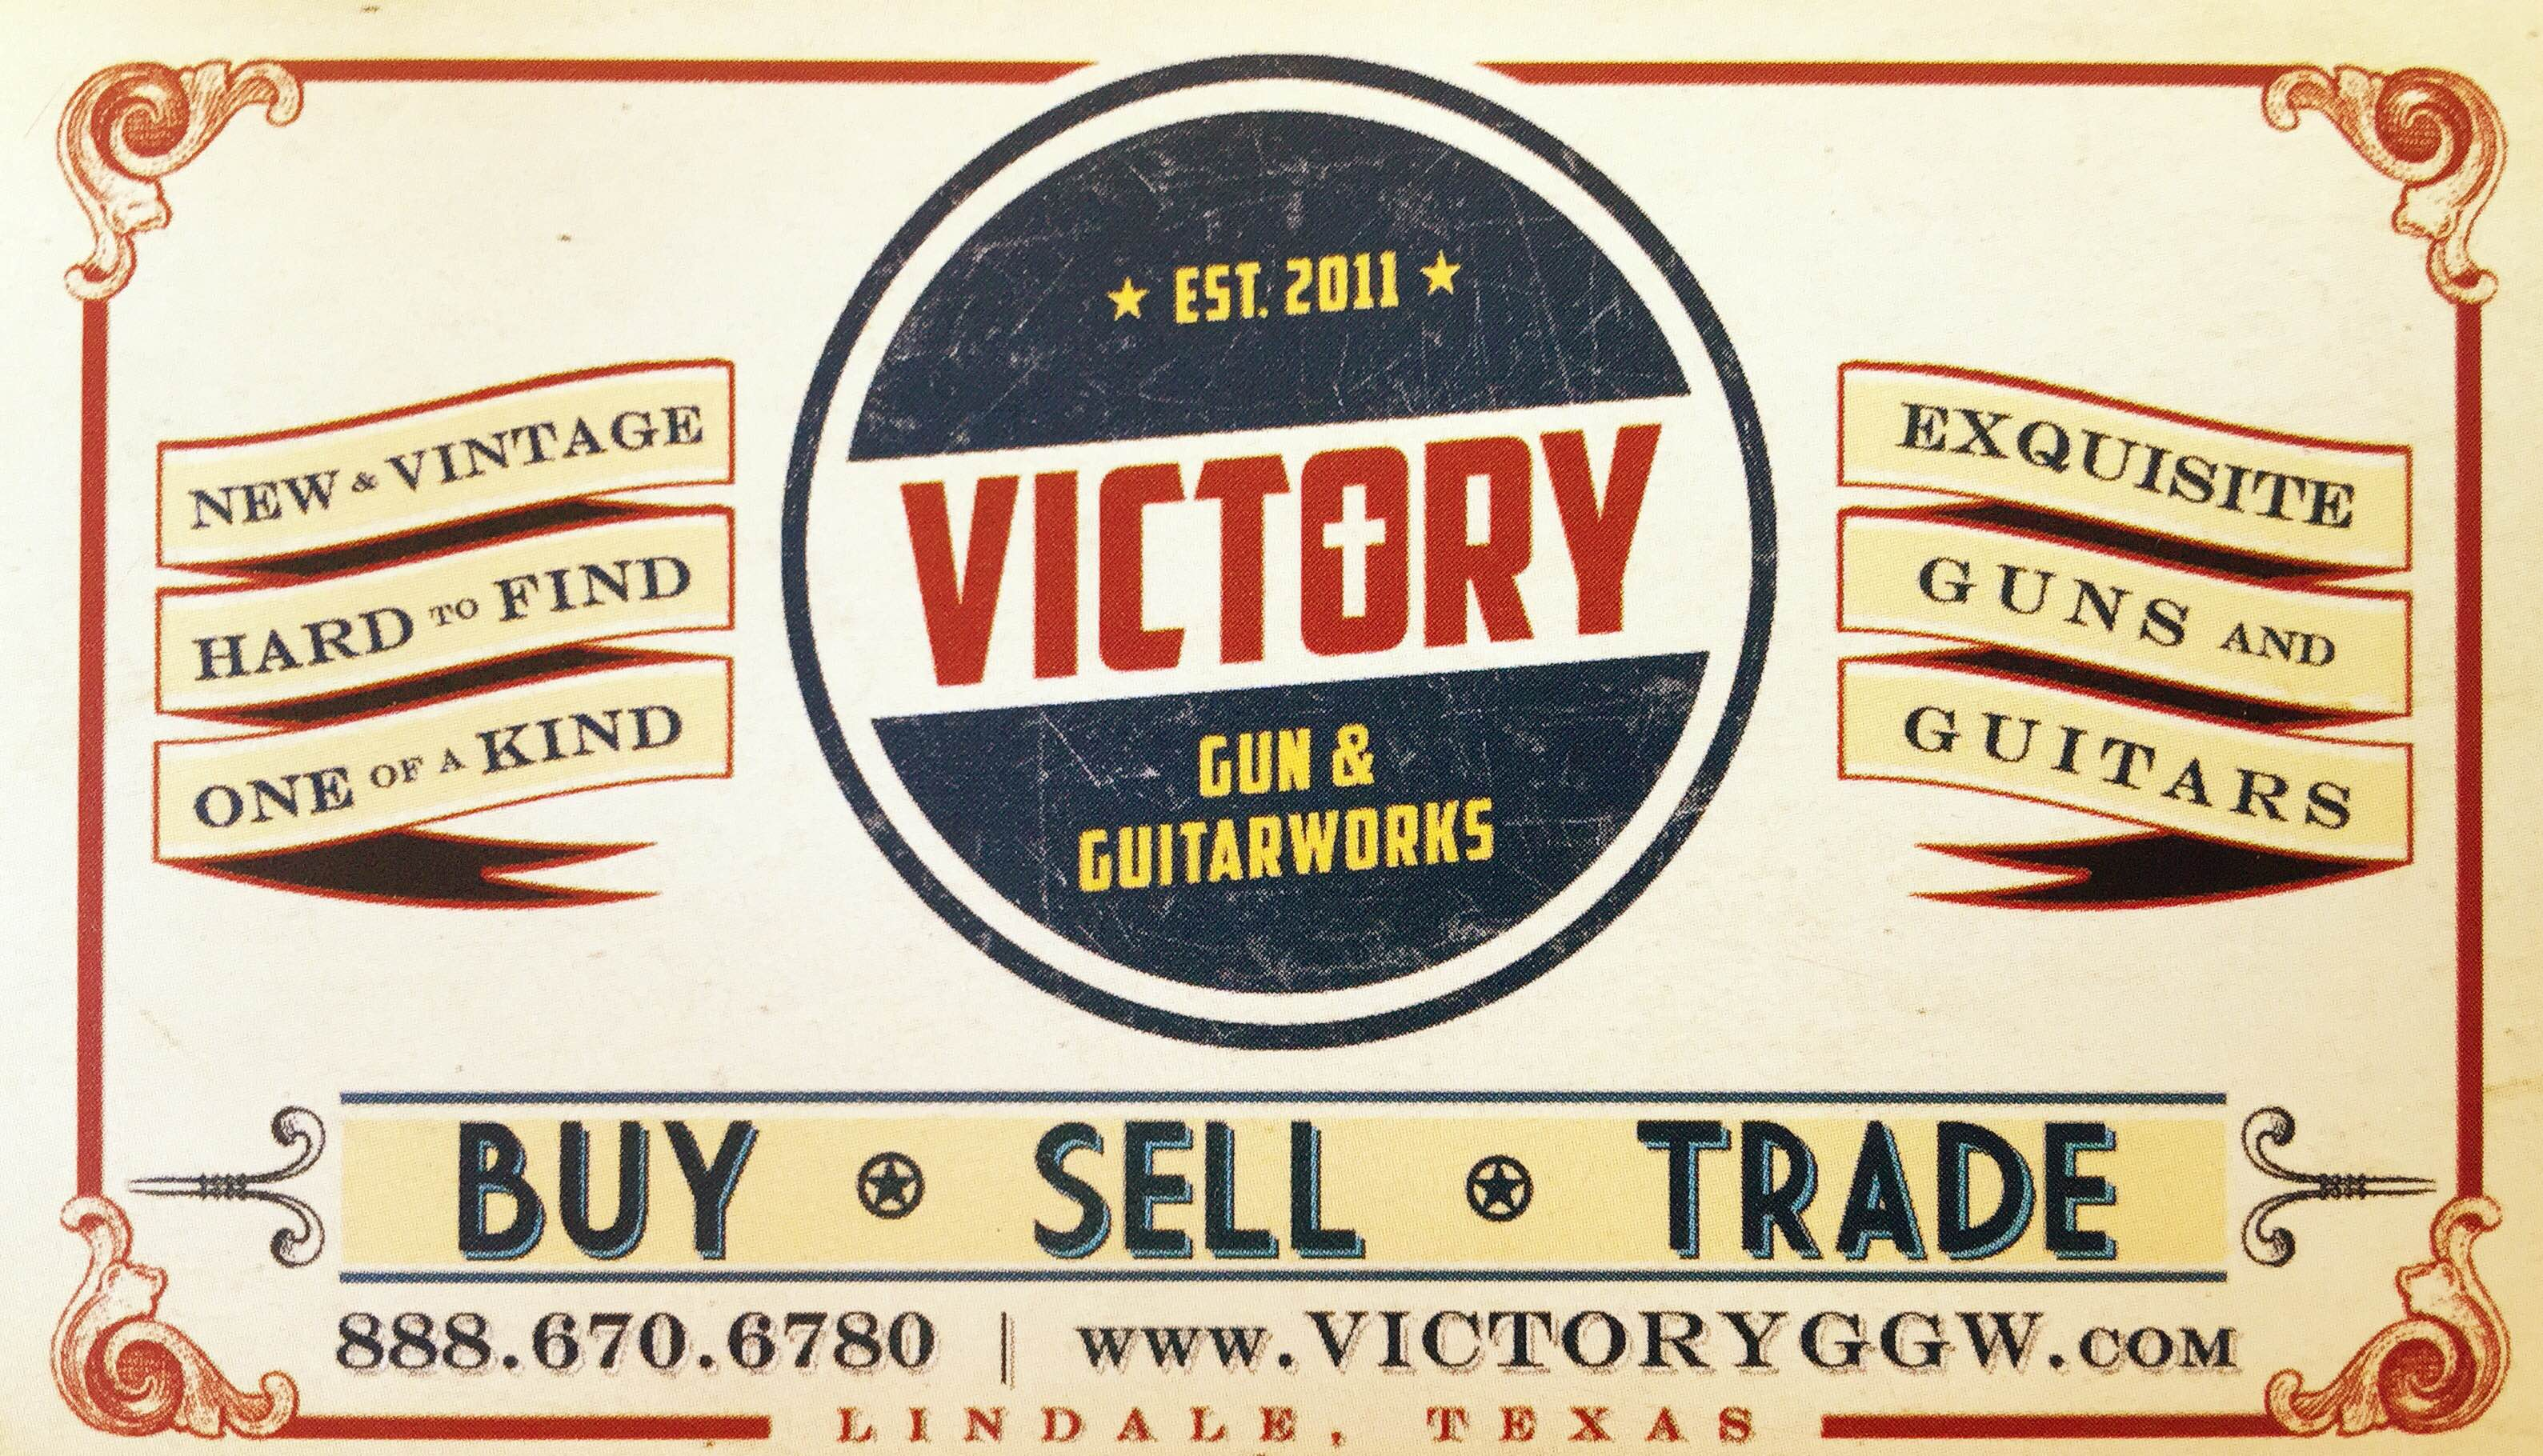 Victory Gun & Guitar Works, LLC